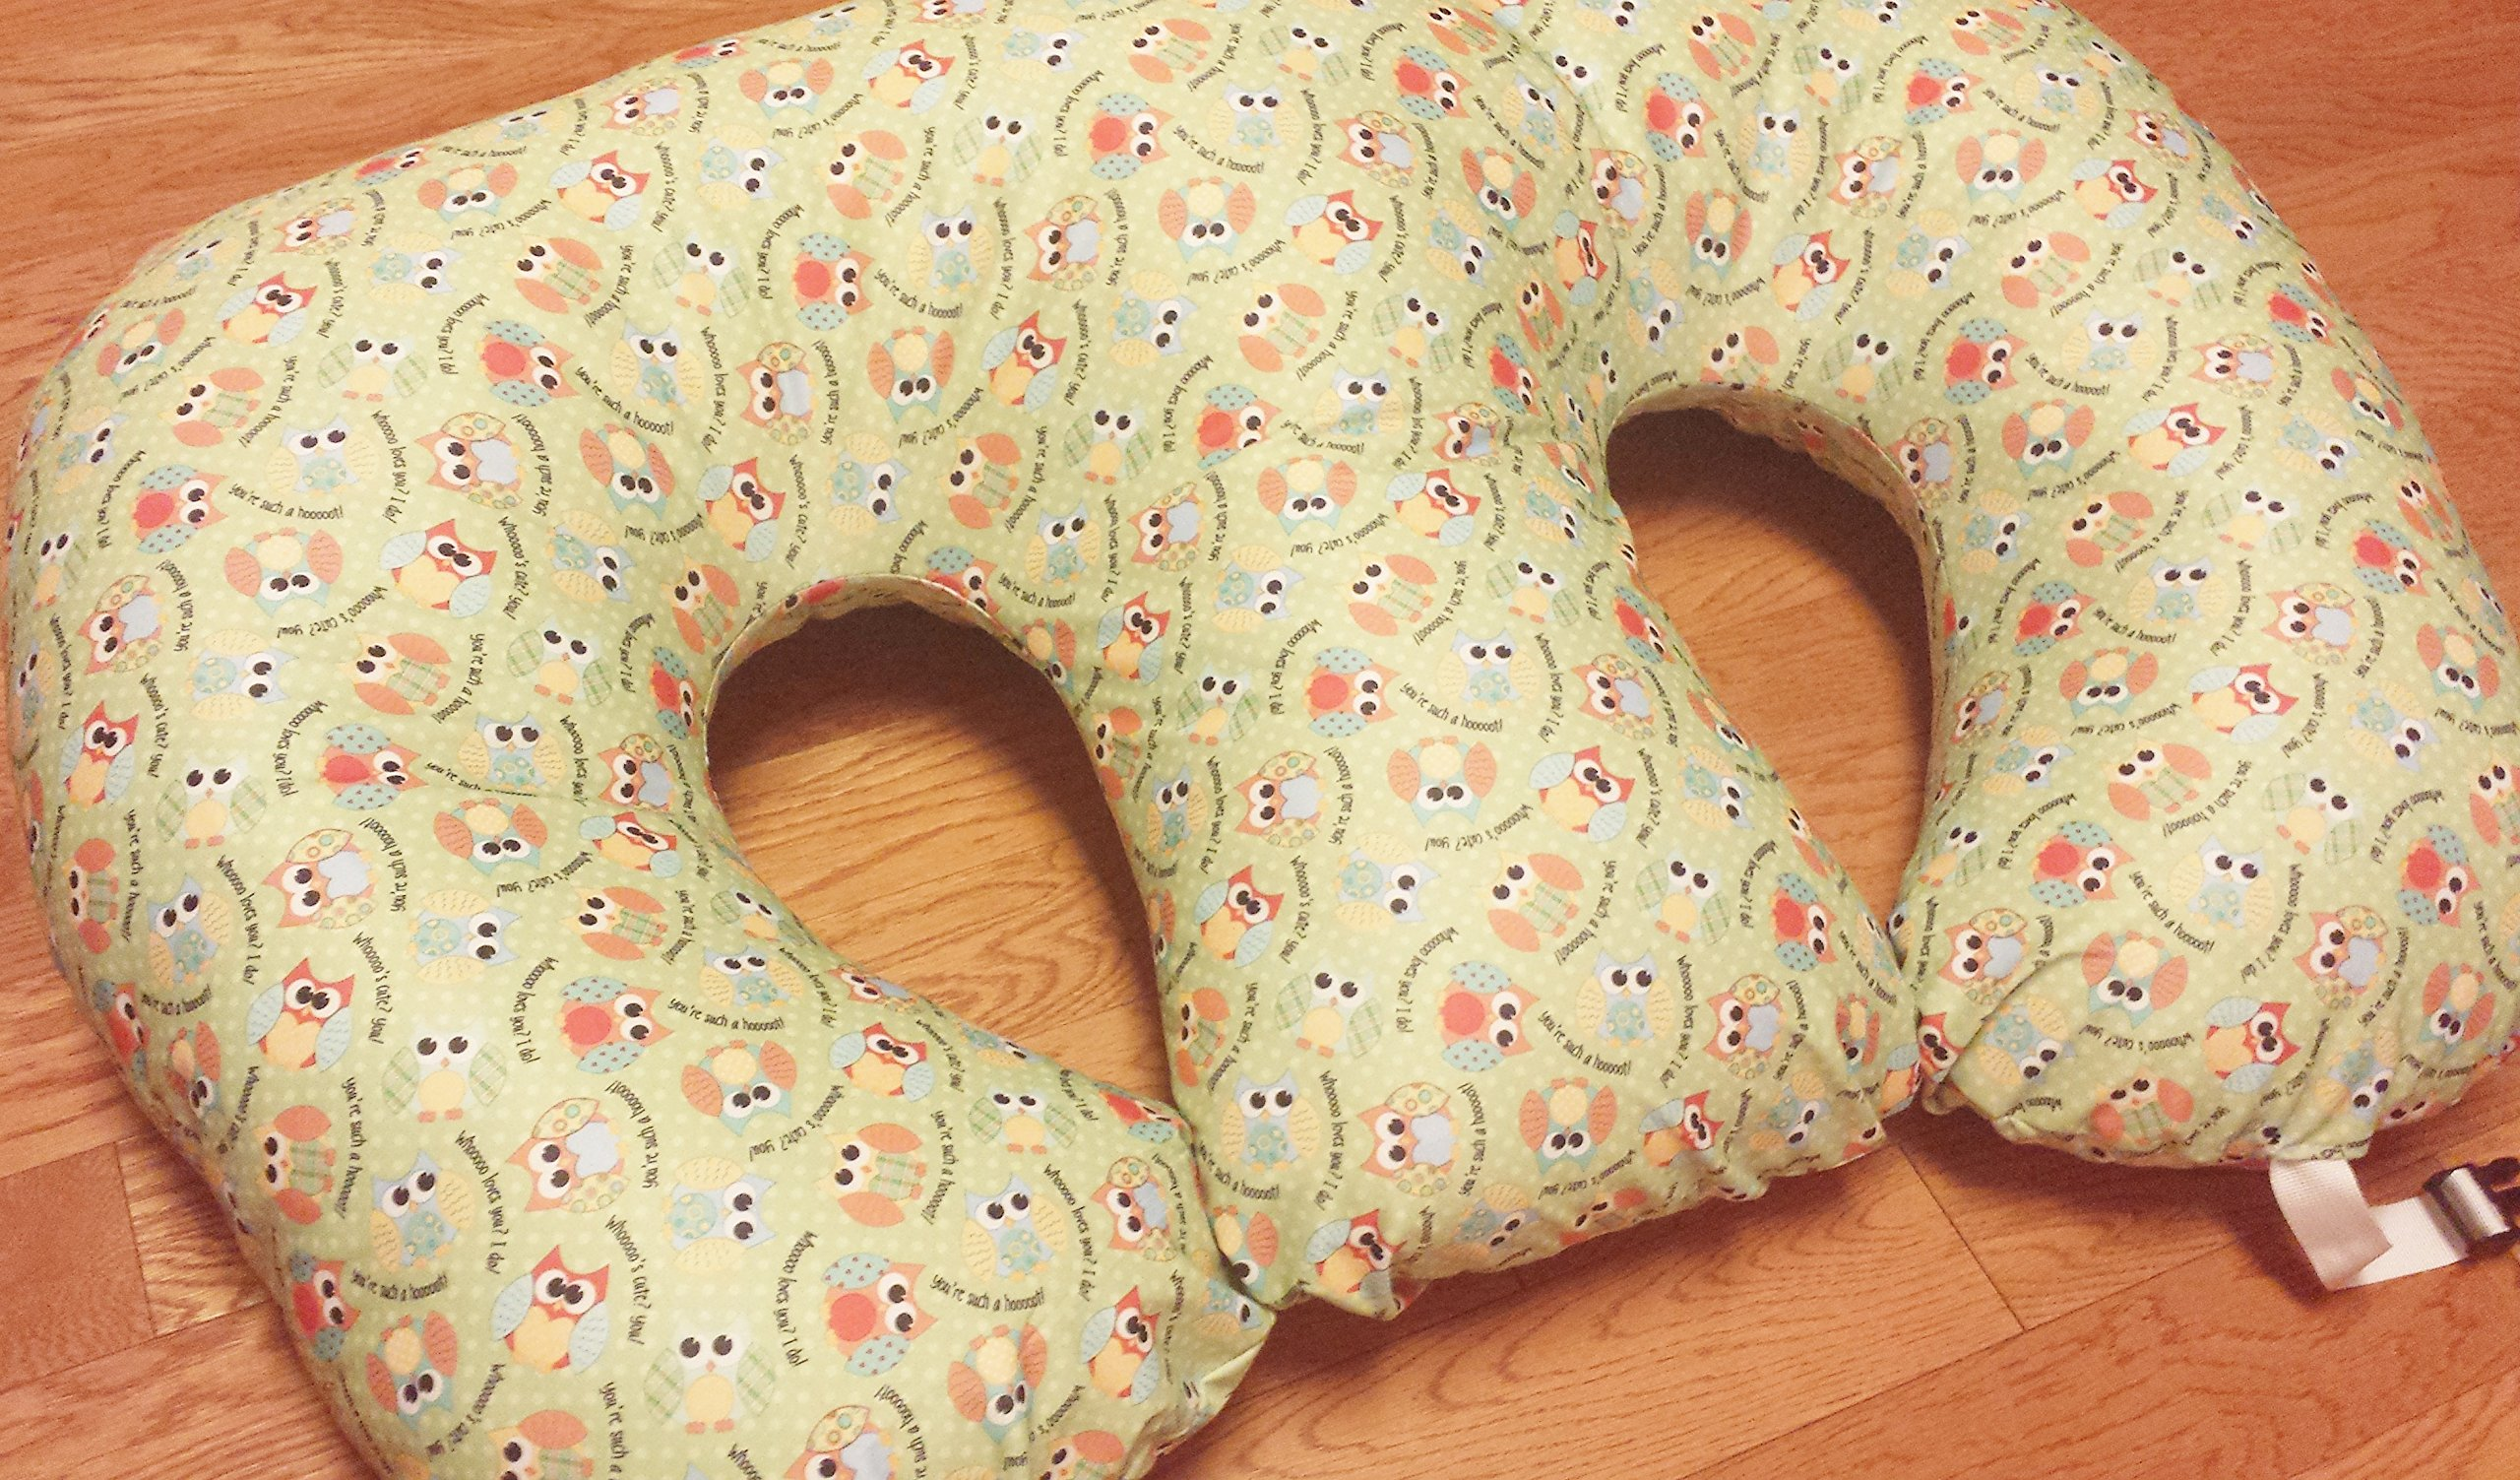 THE TWIN Z PILLOW - Waterproof OWLS Pillow - The only 6 in 1 Twin Pillow Breastfeeding, Bottlefeeding, Tummy Time & Support! A MUST HAVE FOR TWINS! - No extra cover by Twin Z